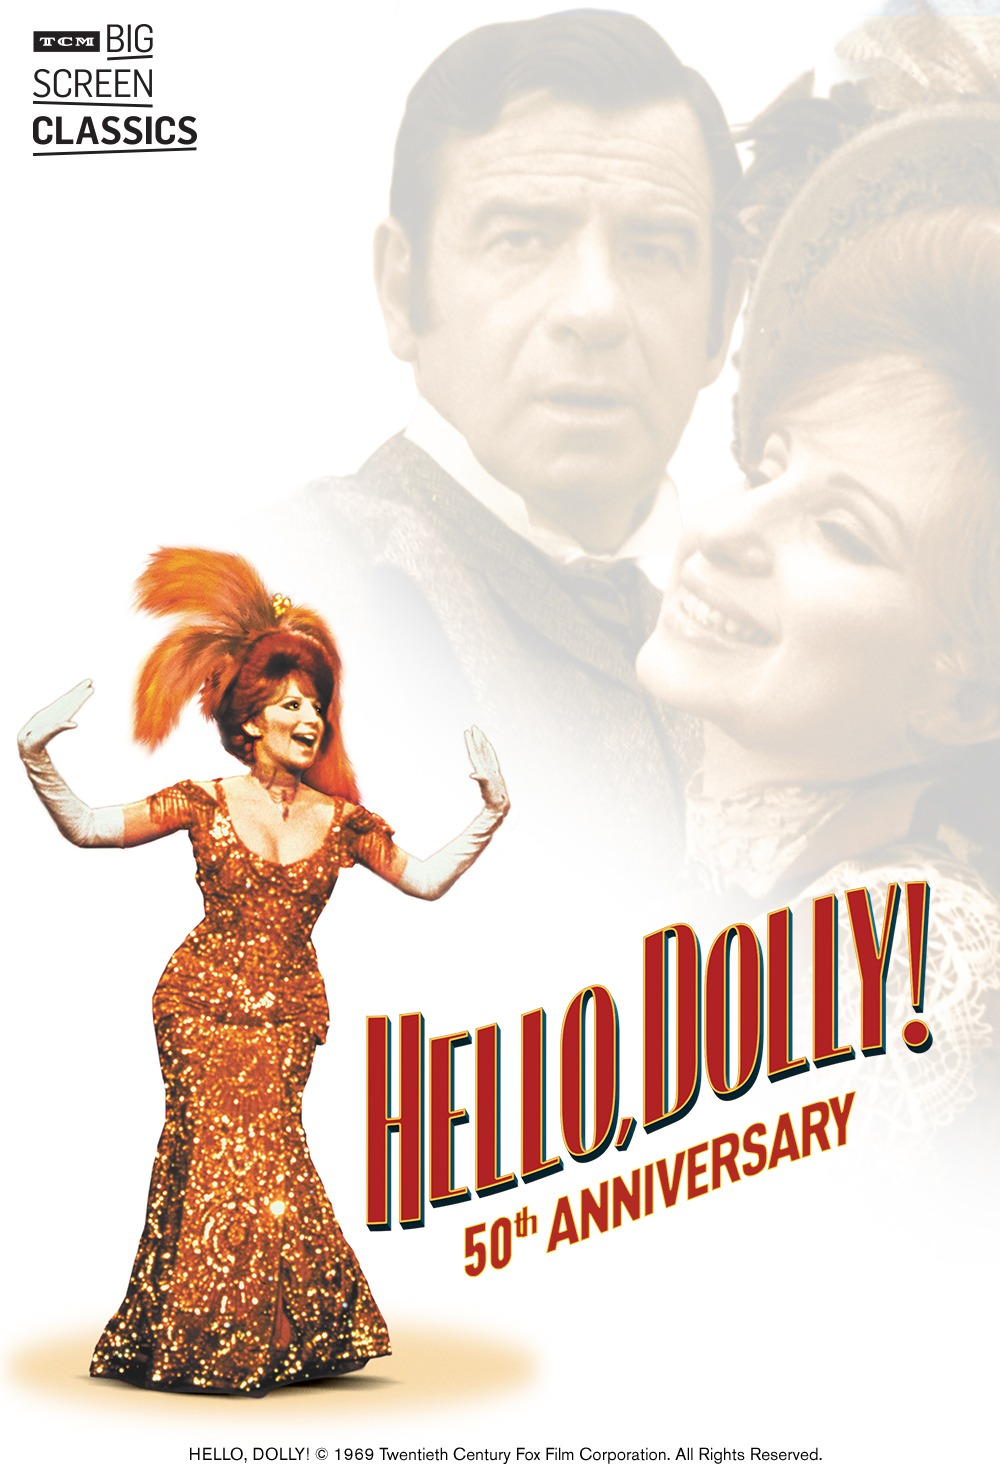 Hello, Dolly! 50th Anniversary